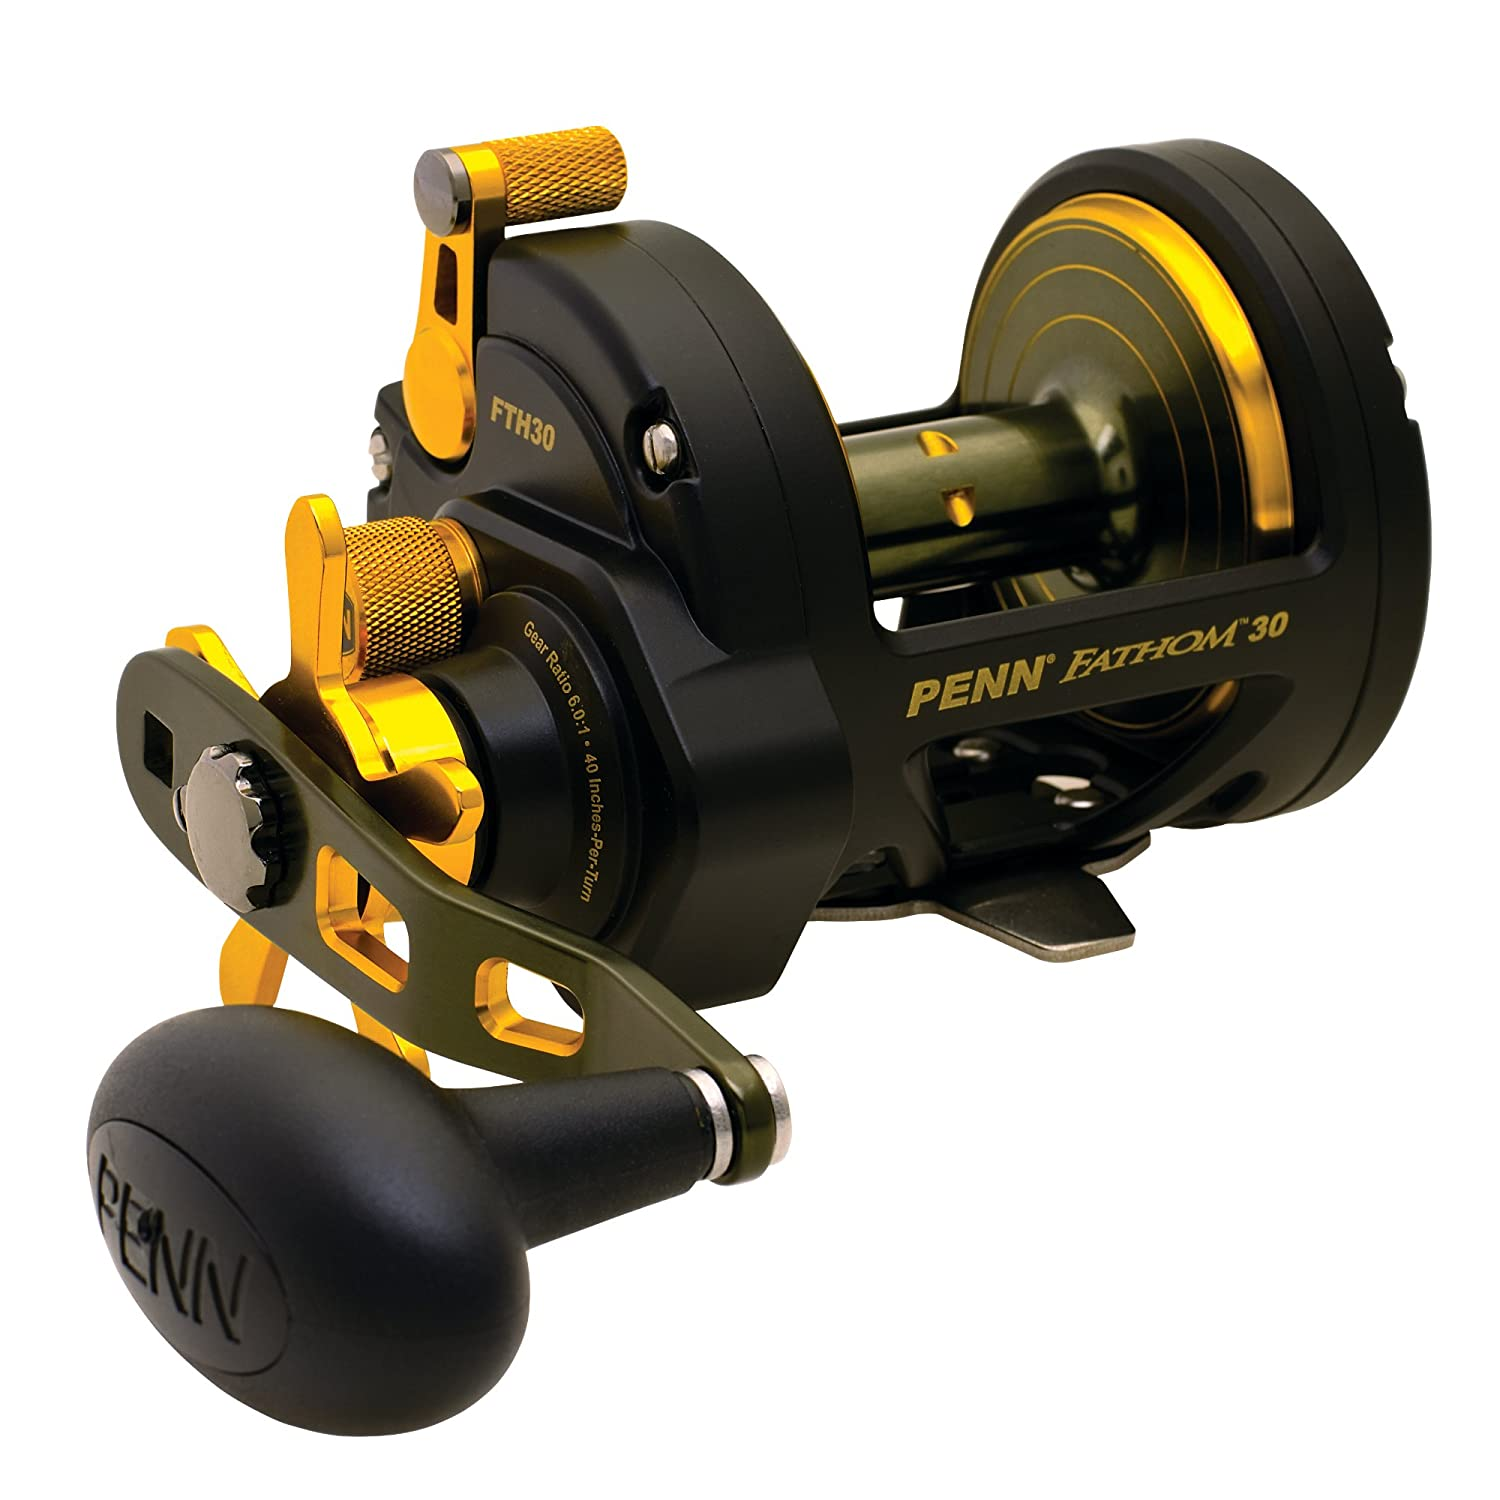 7806d4ee081 Amazon.com : Daiwa Seagate Fishing Reel : Sports & Outdoors